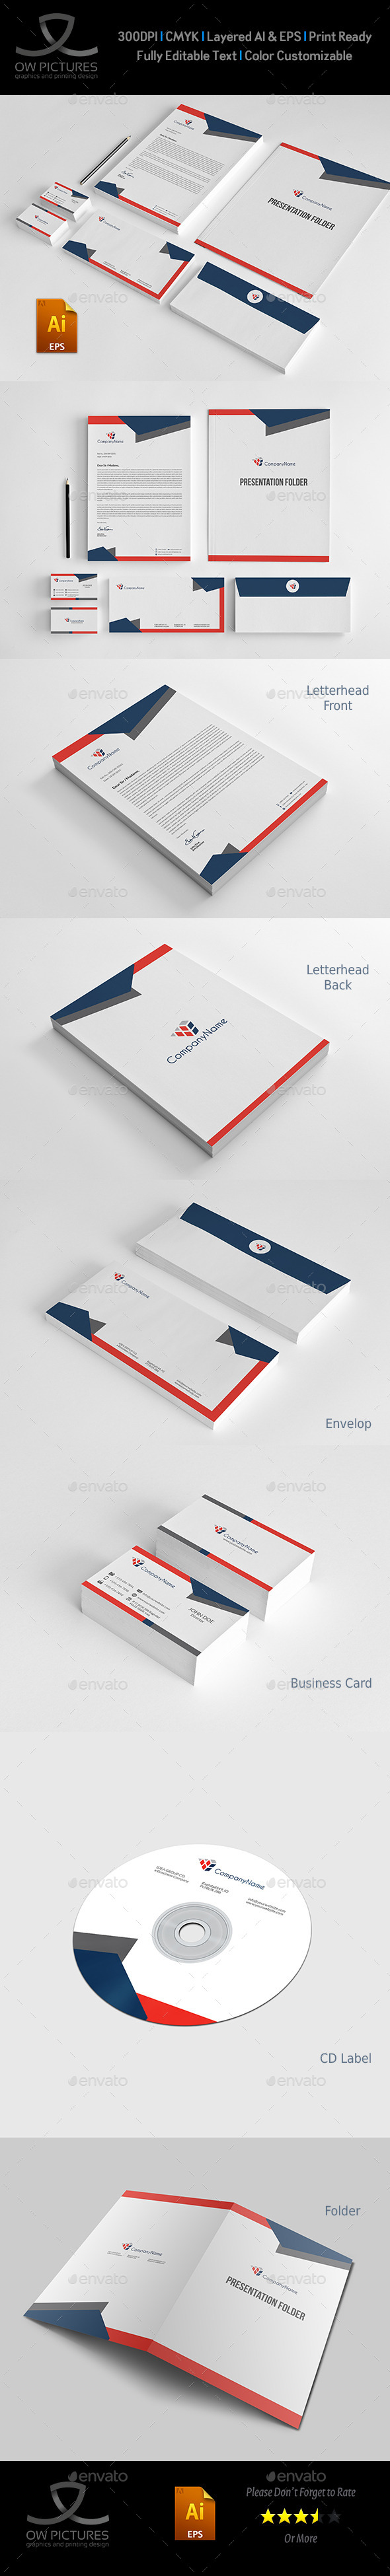 GraphicRiver Corporate Stationery Pack Design Template Vol.11 10917751